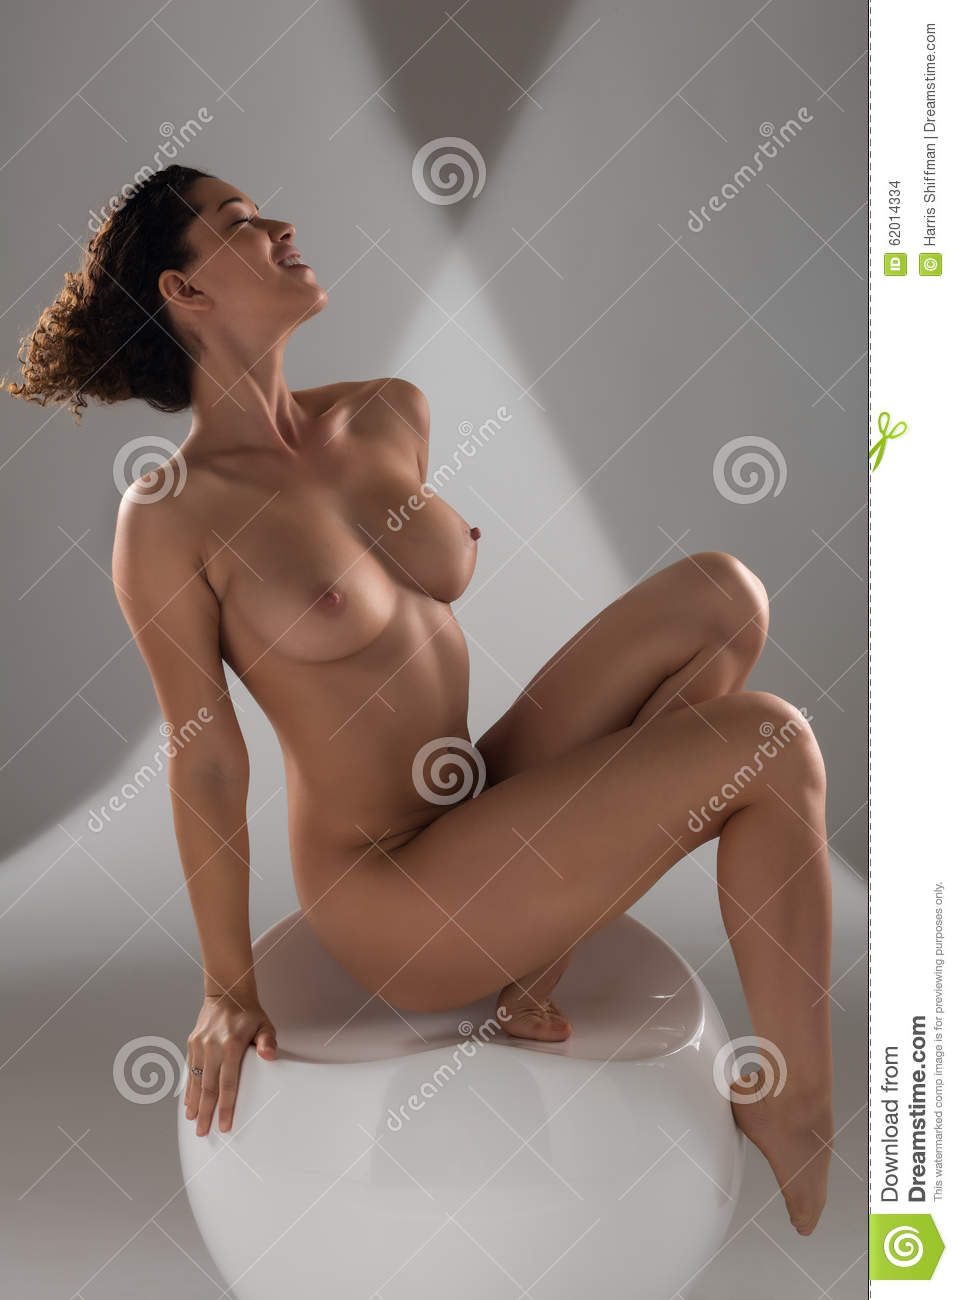 Can curly women nude